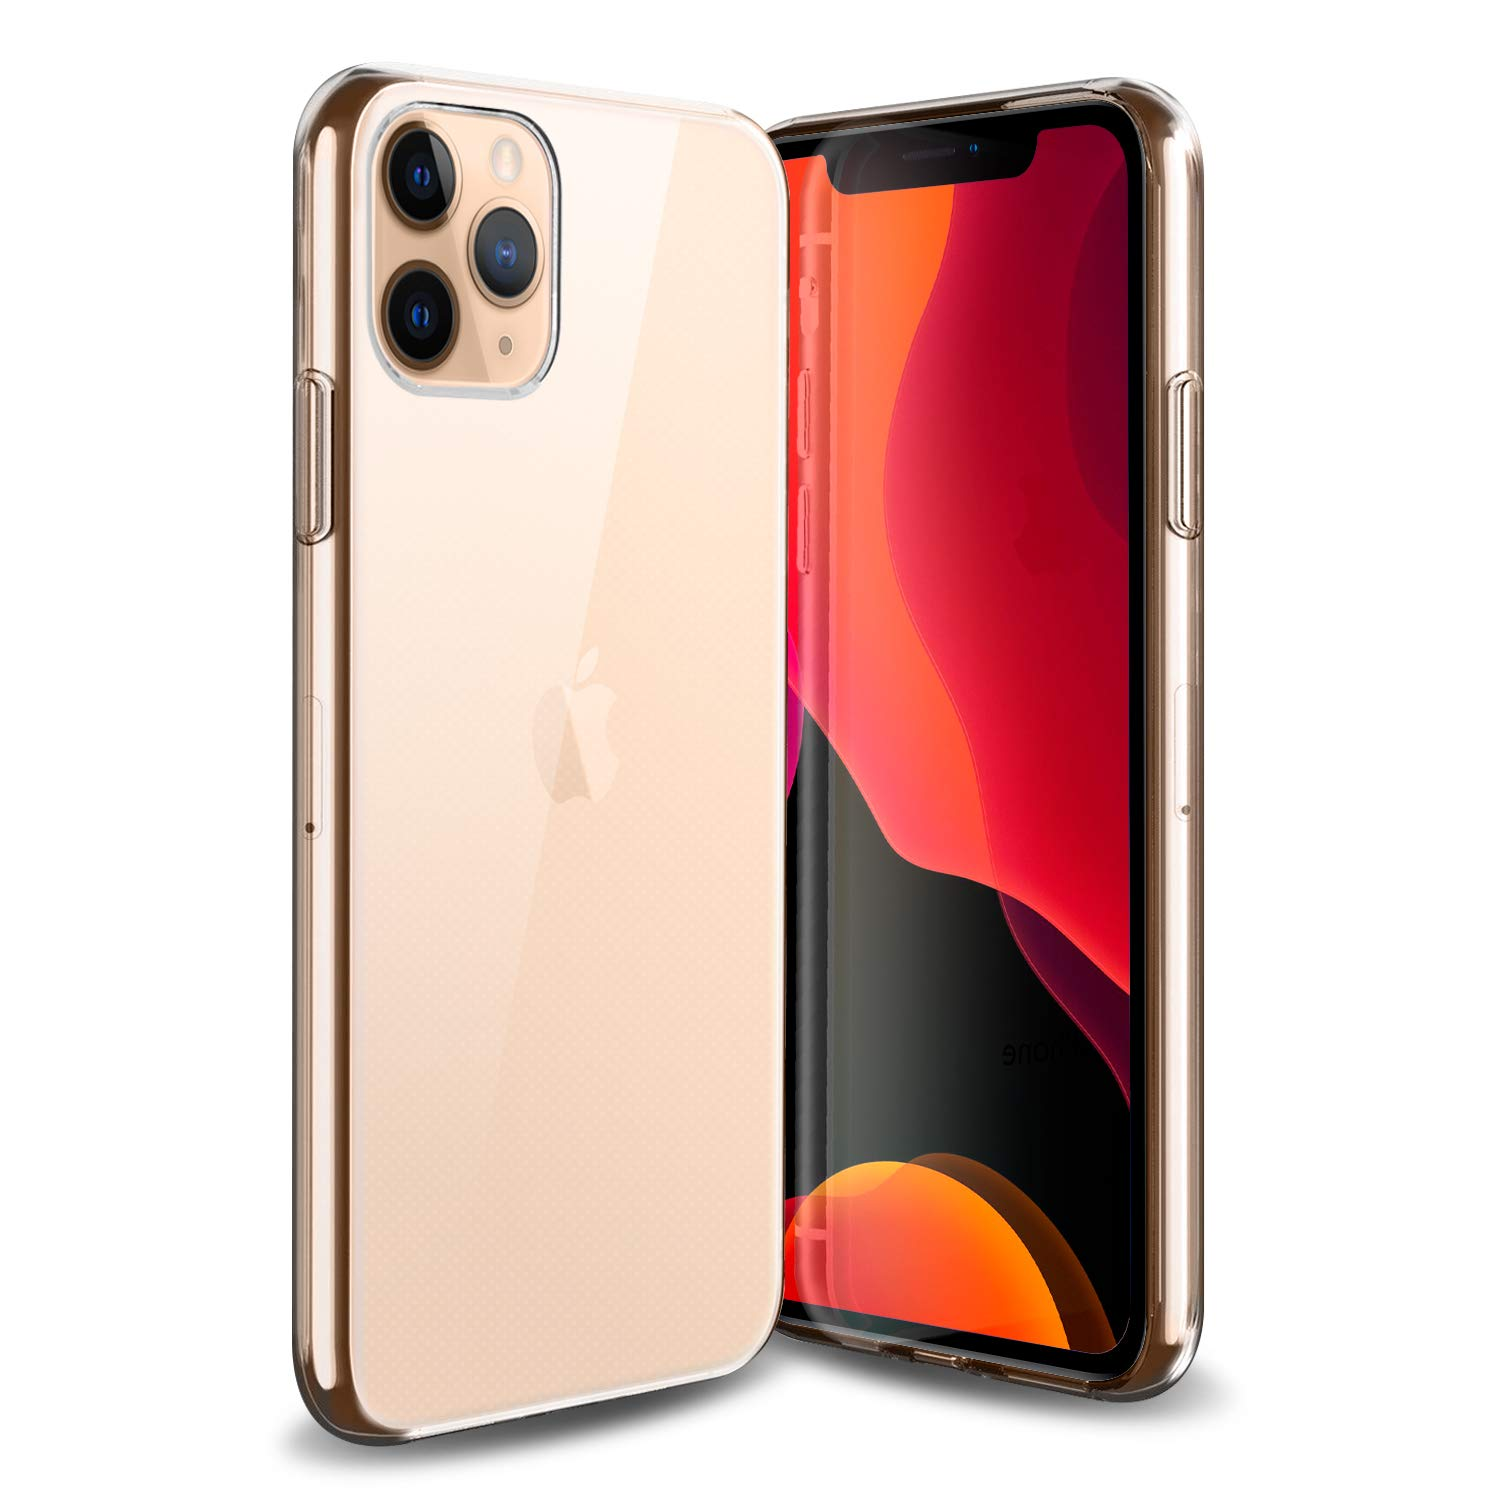 Olixar for iPhone 11 Pro Clear Case - Slim Gel TPU - Ultra Thin - Protective Cover - Flexible - Transparent - Wireless Charging Compatible - Ultra Thin, Clear & Lightweight